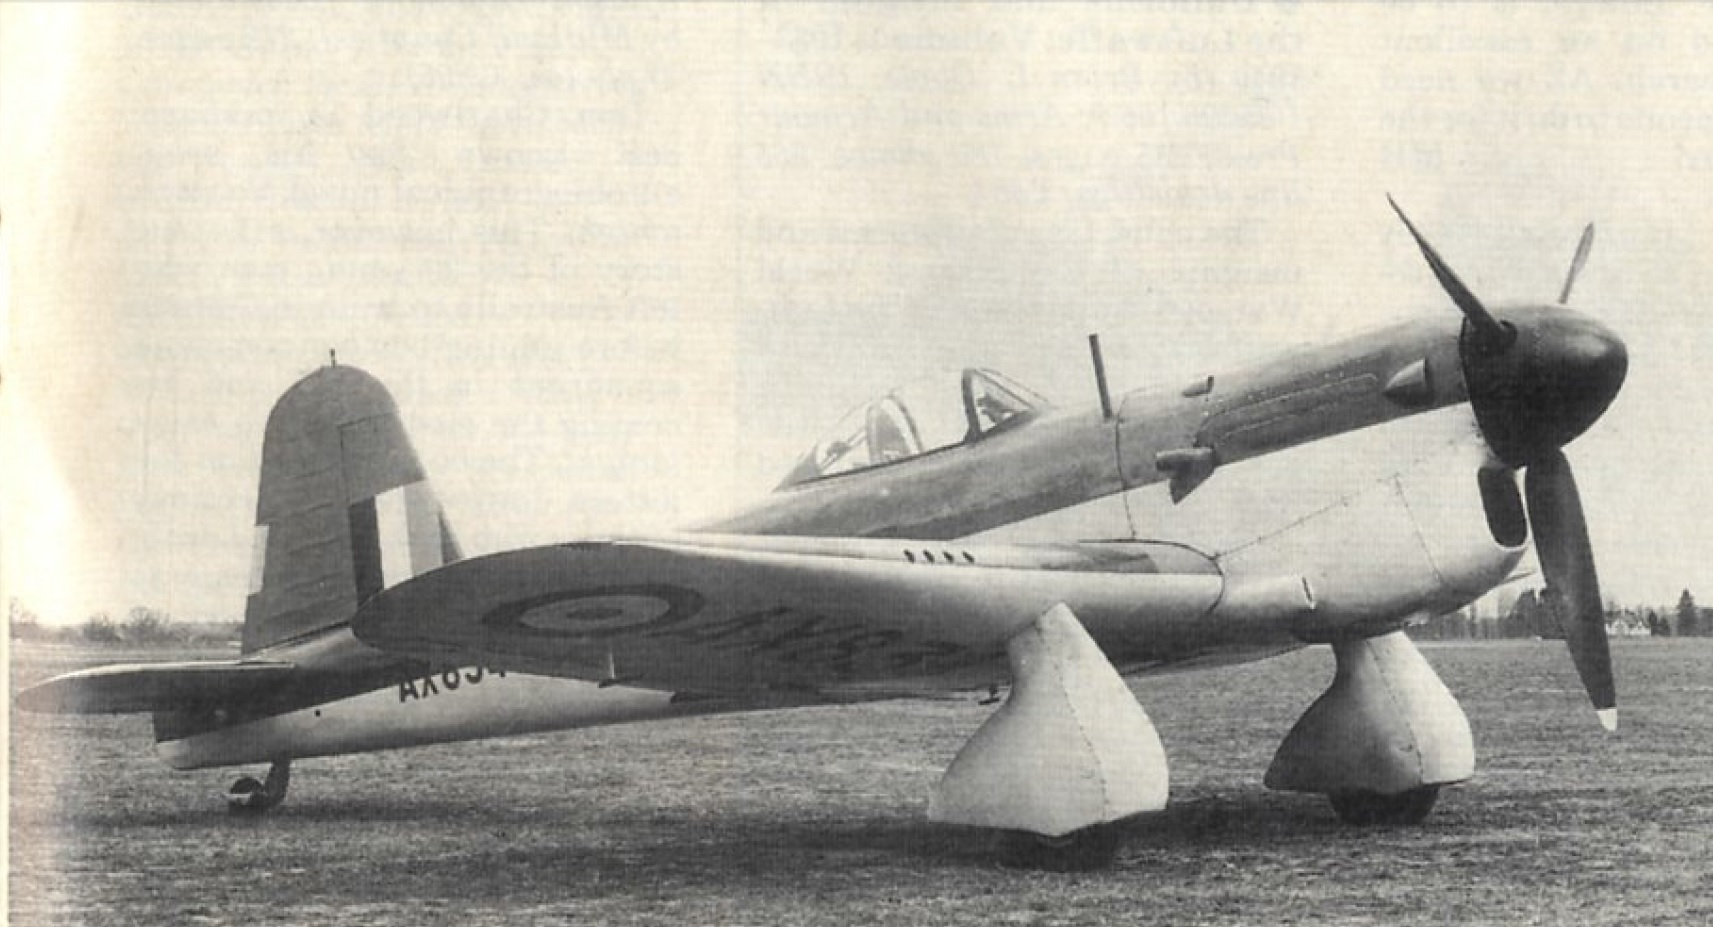 The initial prototype built for the RAF.